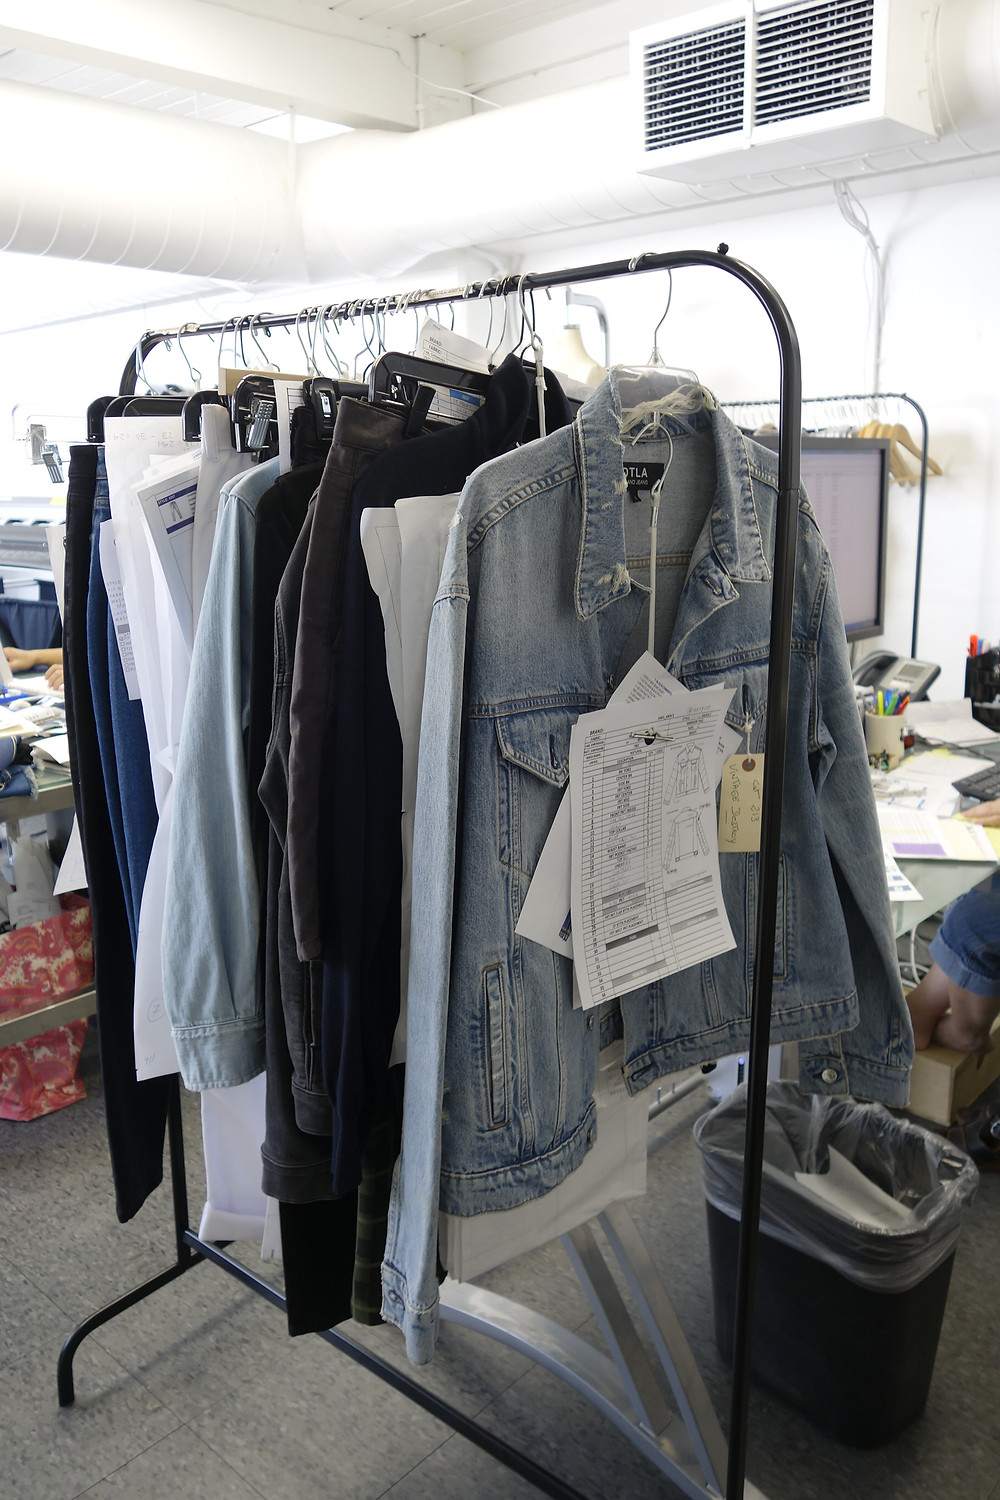 Clothing Manufacturers In Dallas : clothing, manufacturers, dallas, Wholesale, Boutique, Clothing,, Denim, Jeans, Suppliers, Vendors